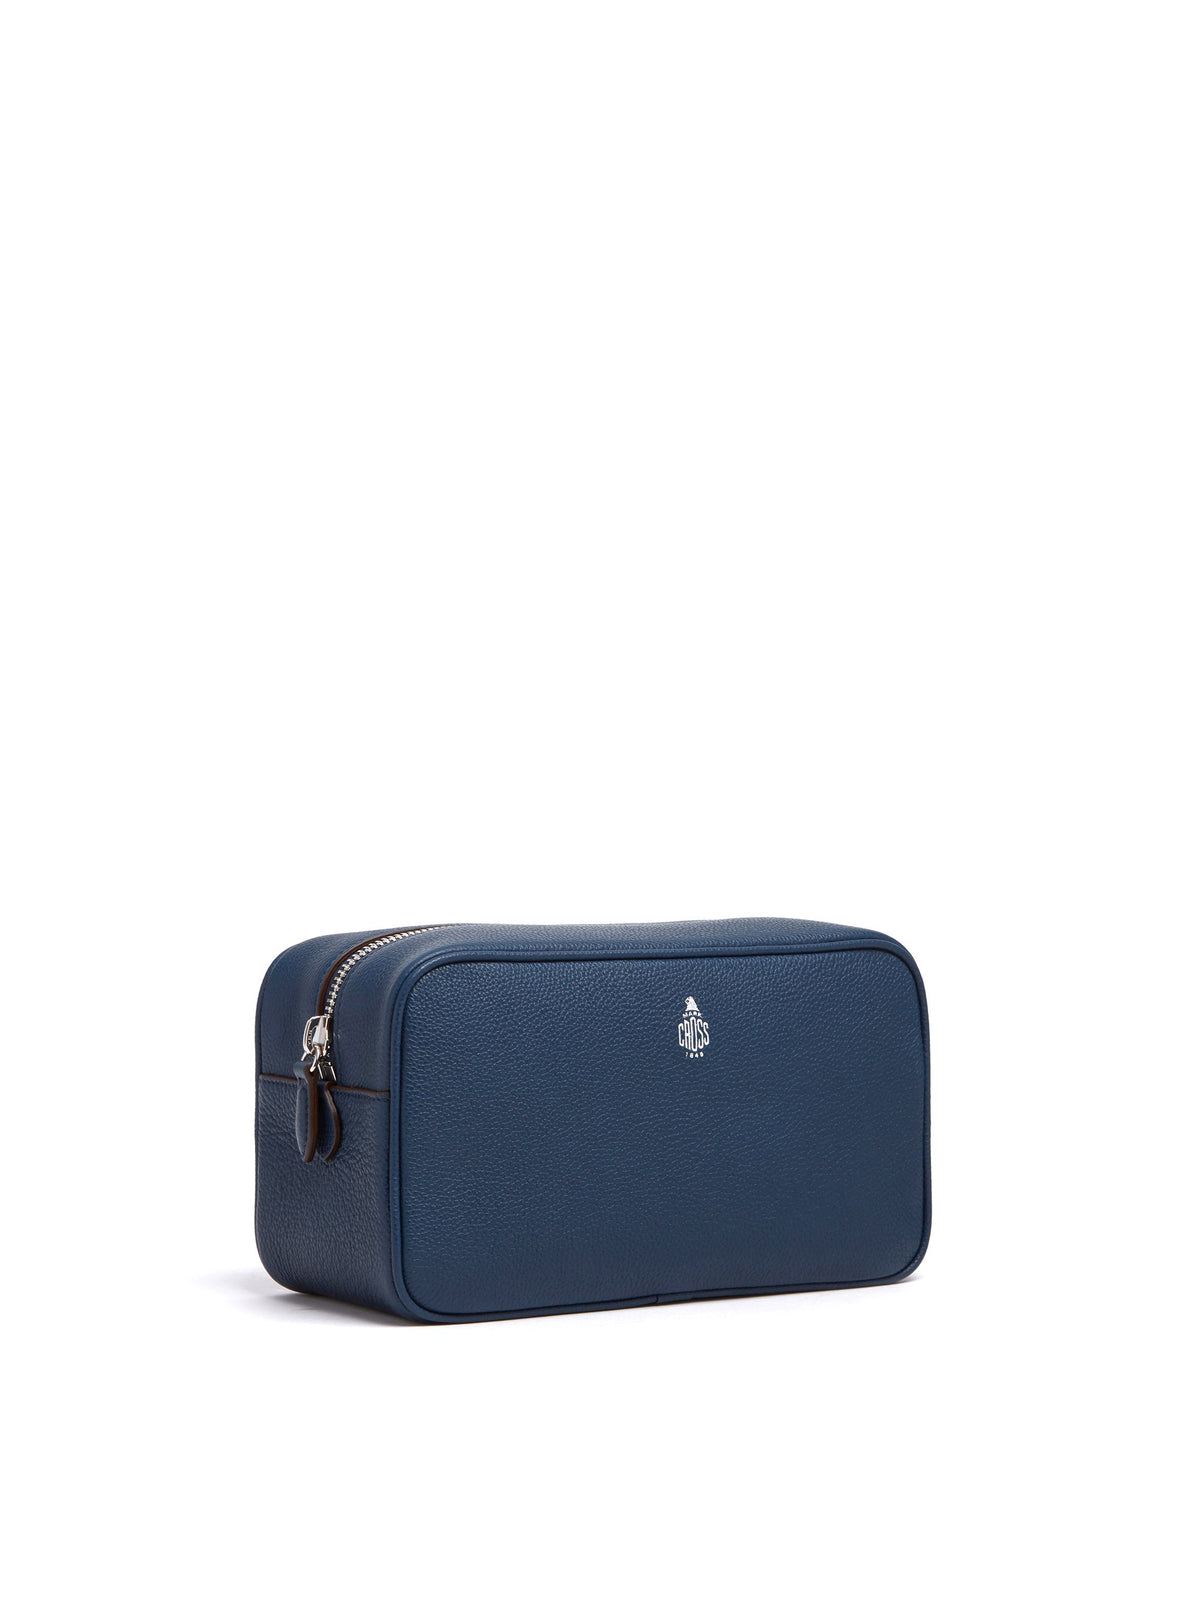 Mark Cross Leather Wash Bag Tumbled Grain Navy Side